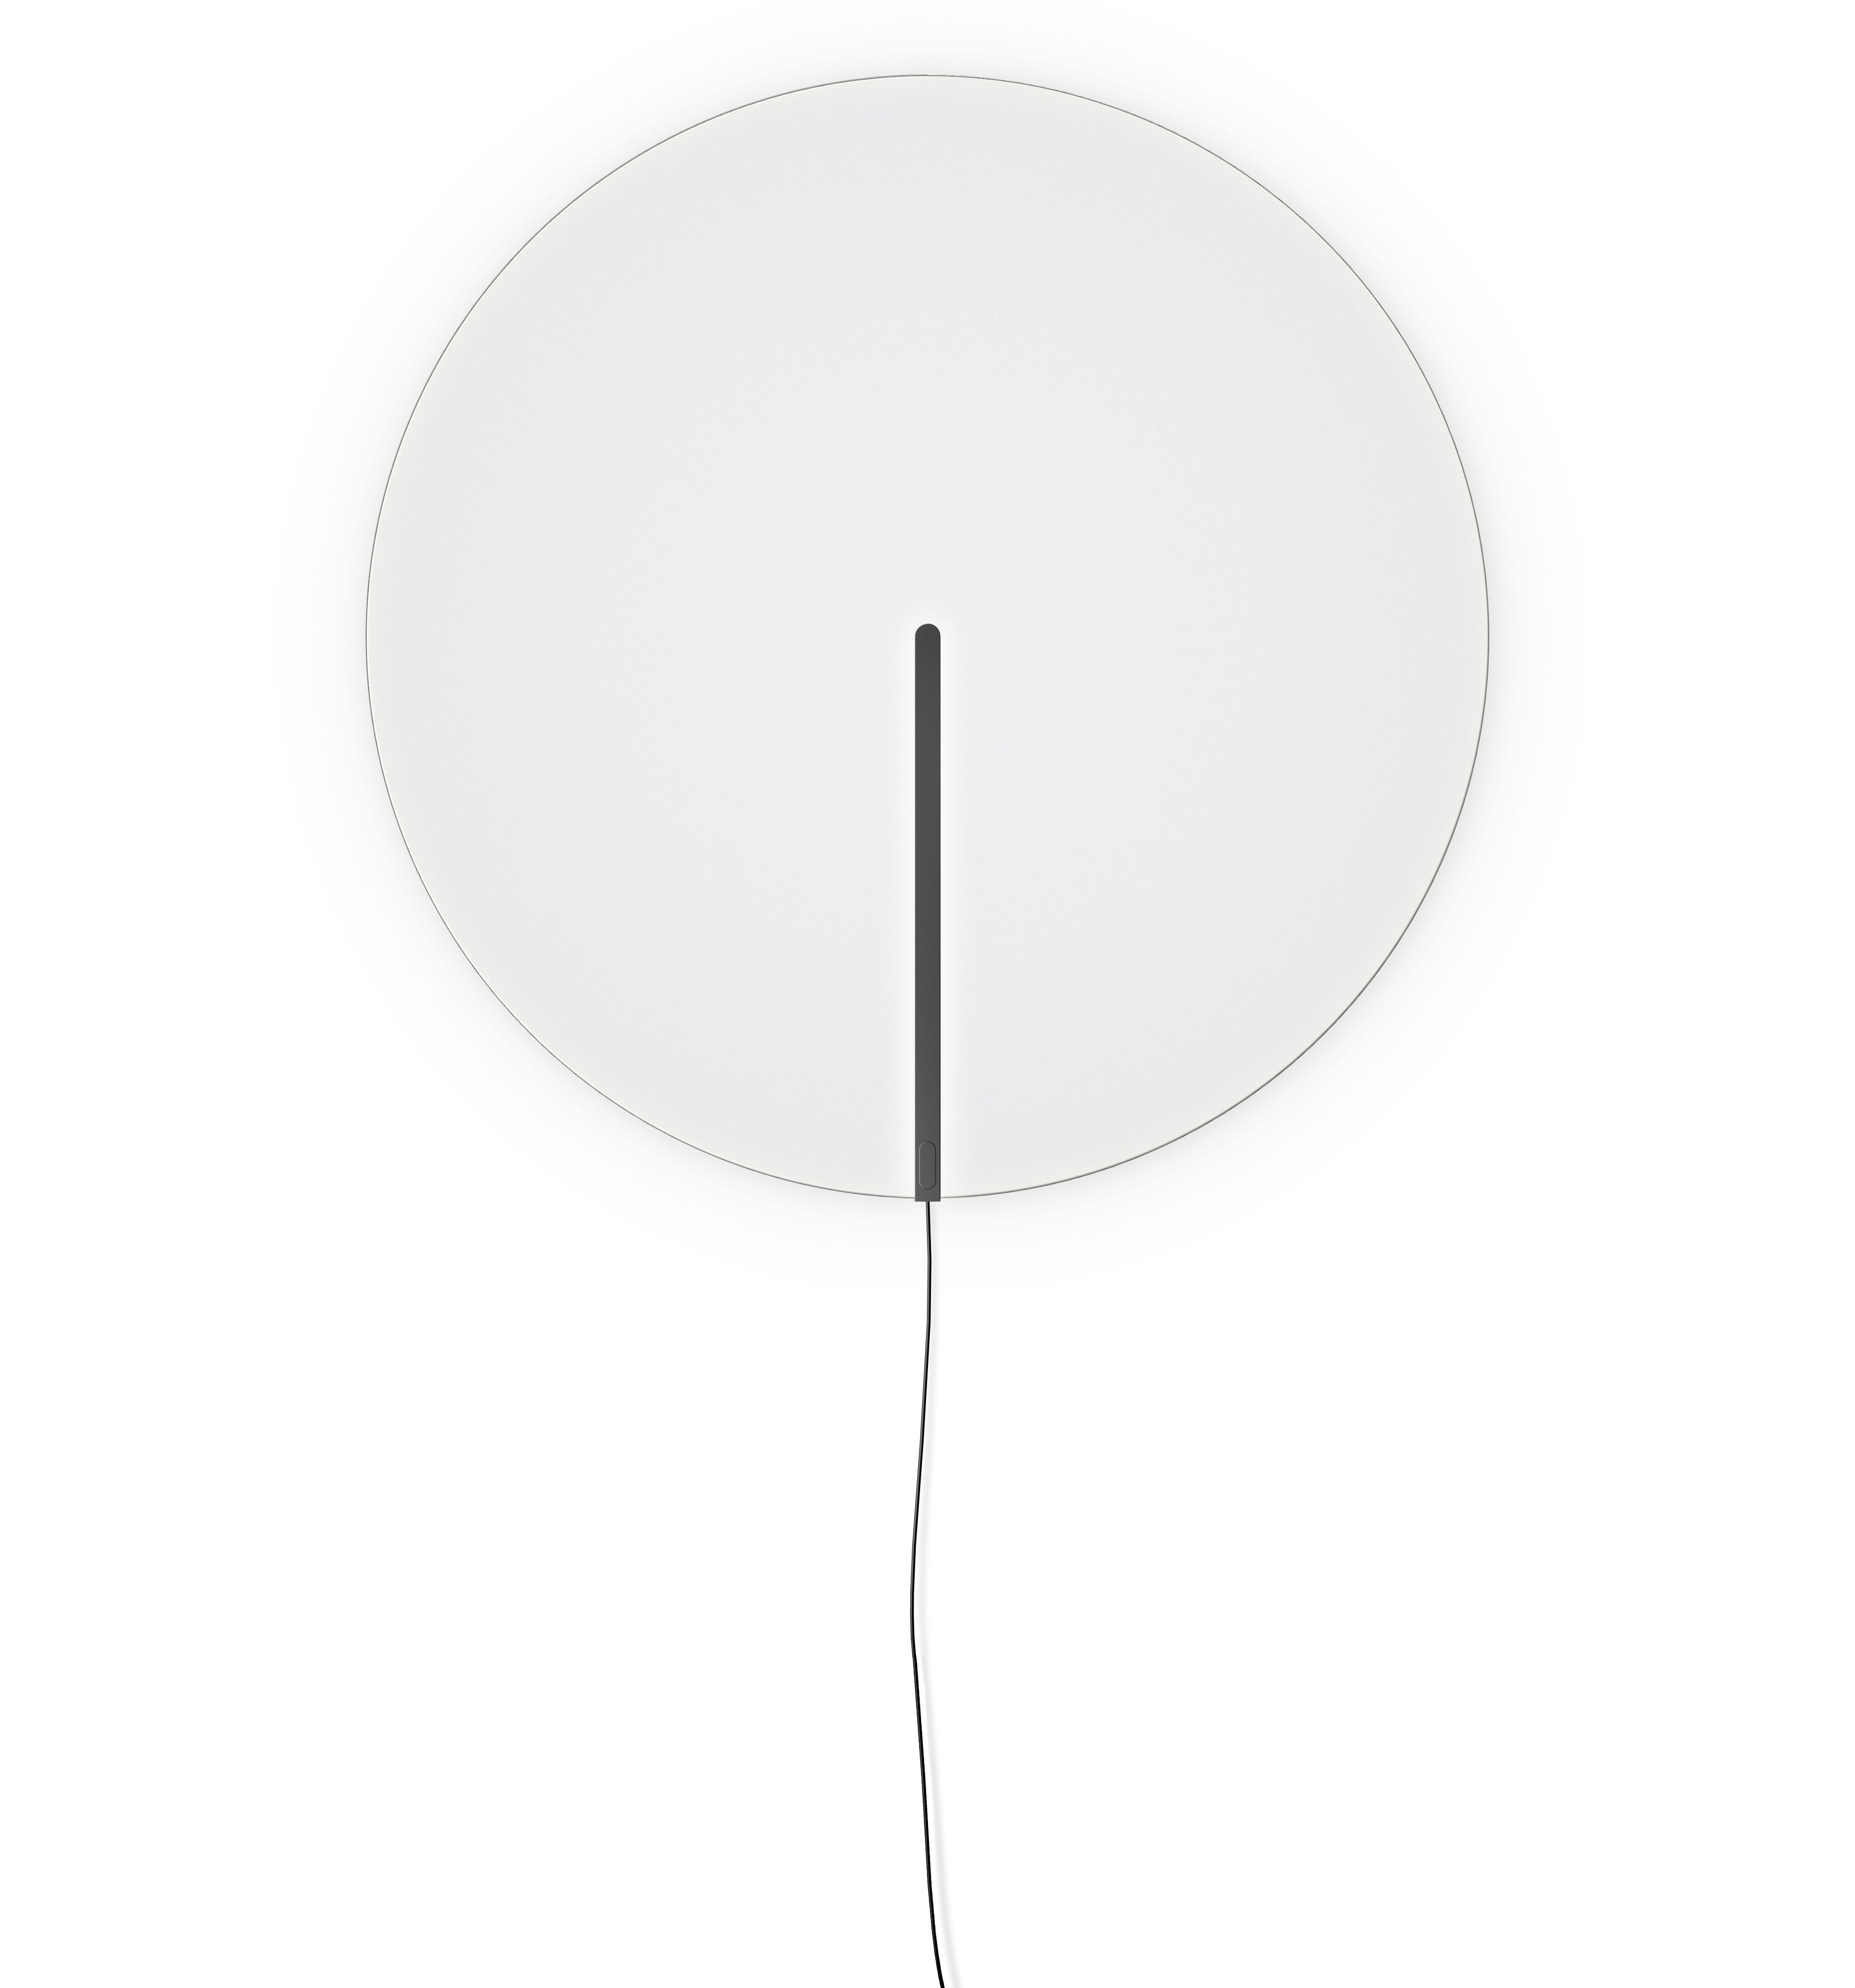 Lighting - Wall Lights - Guise Wall light - / Ø 54 cm by Vibia - Matte graphite lacquer - Aluminium, Borosilicated glass